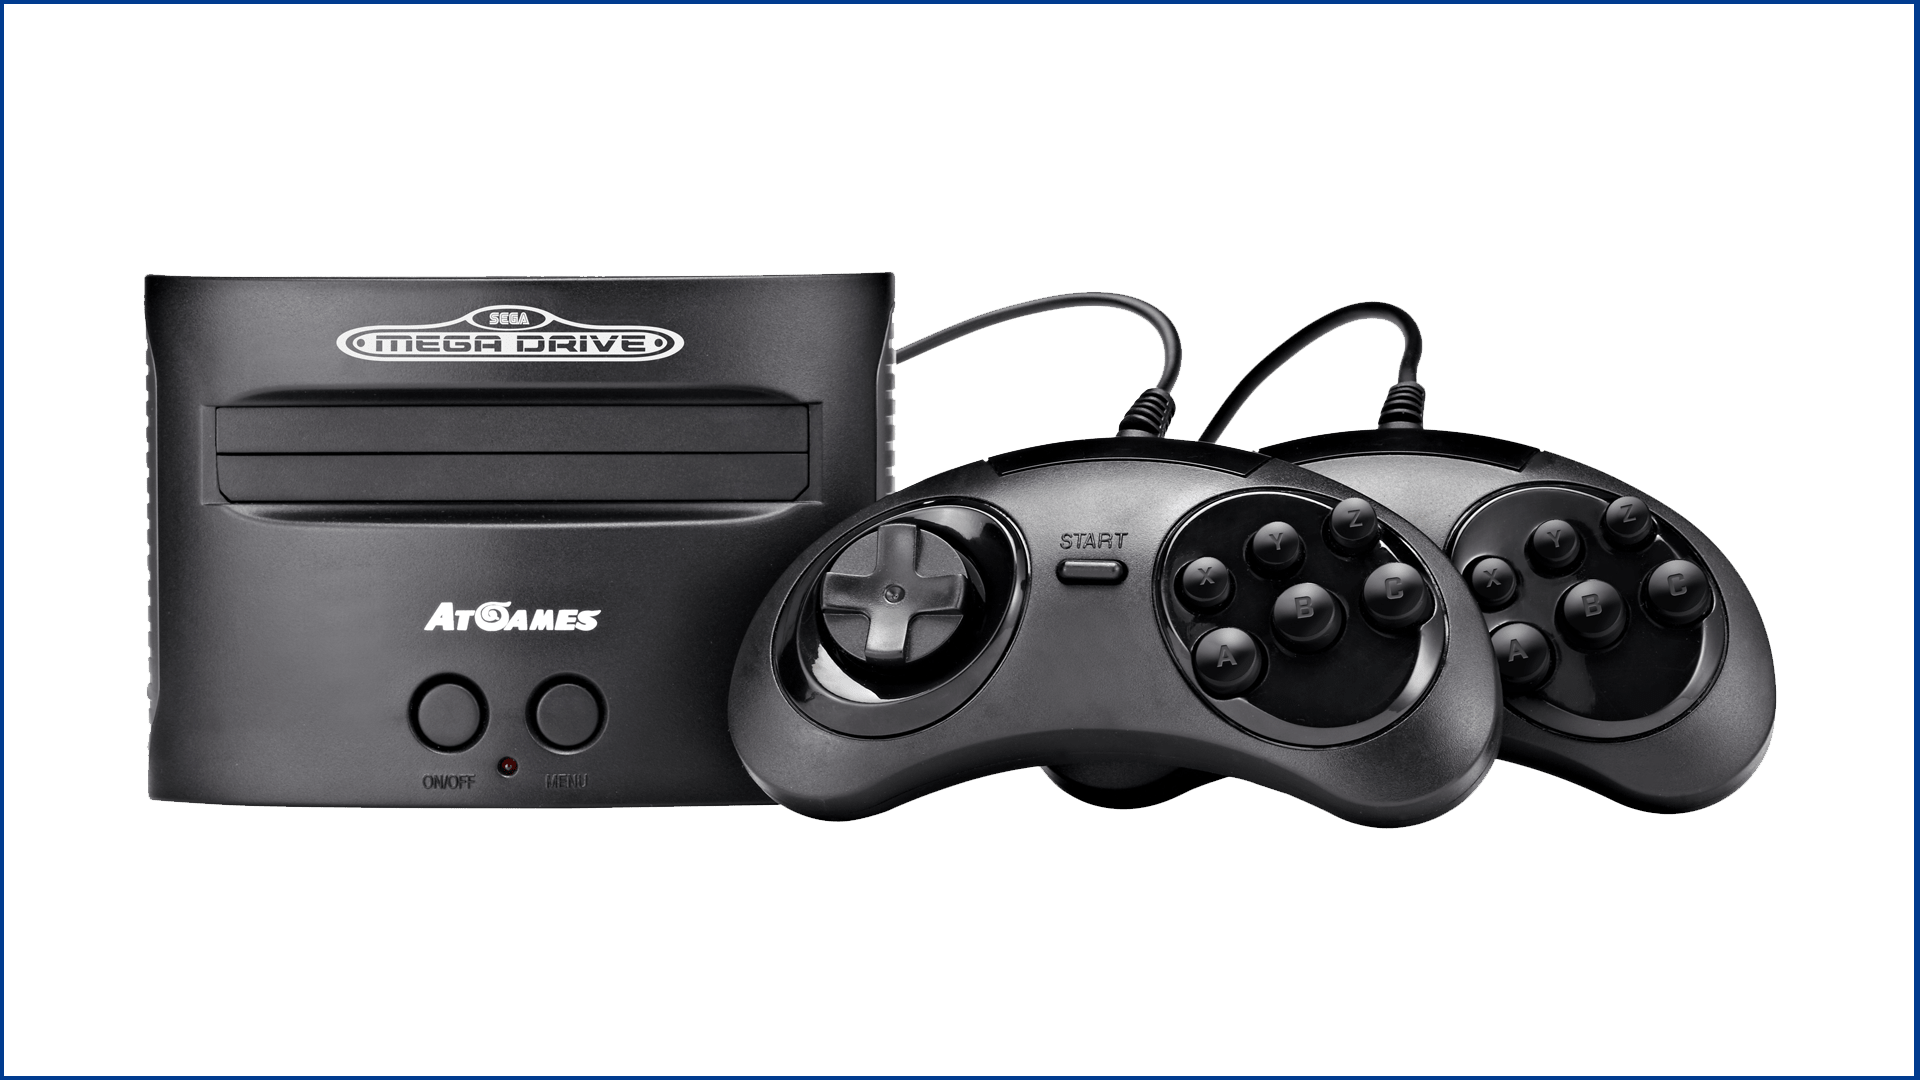 Sega_Classic_game_Console_Contour_Just_For_Games